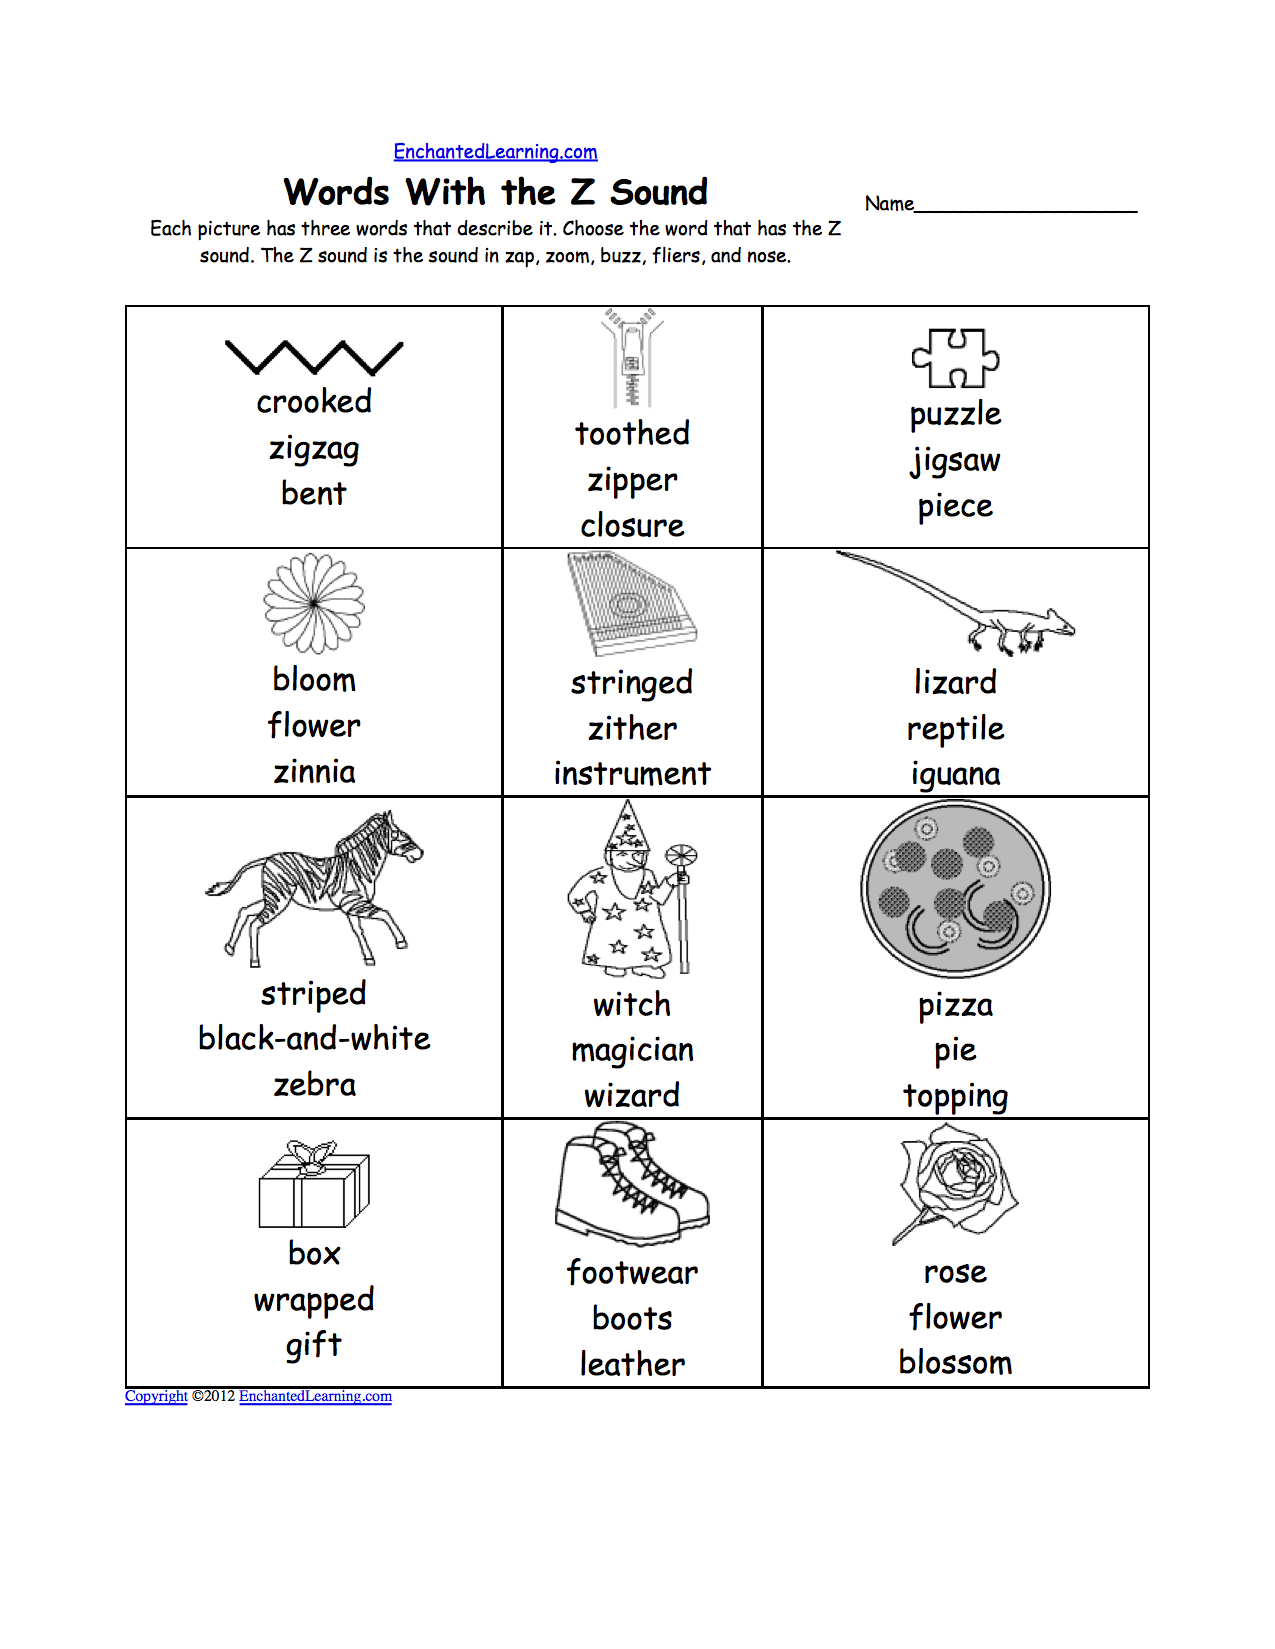 Weirdmailus  Pleasing Phonics Worksheets Multiple Choice Worksheets To Print  With Hot Phonics Worksheets Multiple Choice Worksheets To Print  Enchantedlearningcom With Beauteous Multiplying Decimals By Powers Of  Worksheets Also Factoring Equations Worksheet In Addition Abc Worksheets Kindergarten And Planet Worksheet As Well As Sight Word Worksheet Generator Additionally Identifying Fractions Worksheets From Enchantedlearningcom With Weirdmailus  Hot Phonics Worksheets Multiple Choice Worksheets To Print  With Beauteous Phonics Worksheets Multiple Choice Worksheets To Print  Enchantedlearningcom And Pleasing Multiplying Decimals By Powers Of  Worksheets Also Factoring Equations Worksheet In Addition Abc Worksheets Kindergarten From Enchantedlearningcom